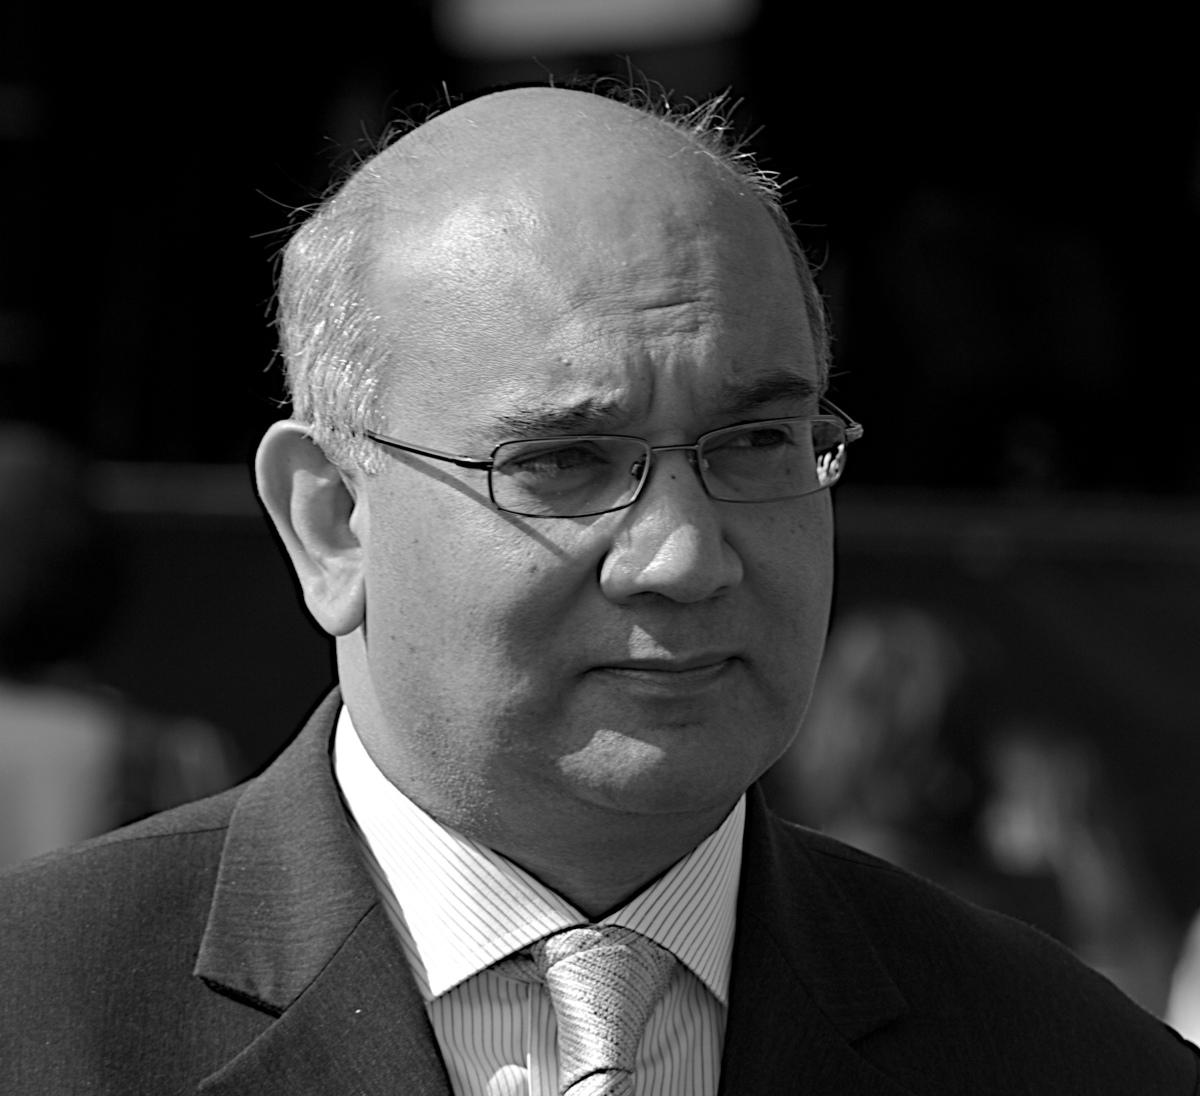 BBC Northampton interview about Keith Vaz's resignation